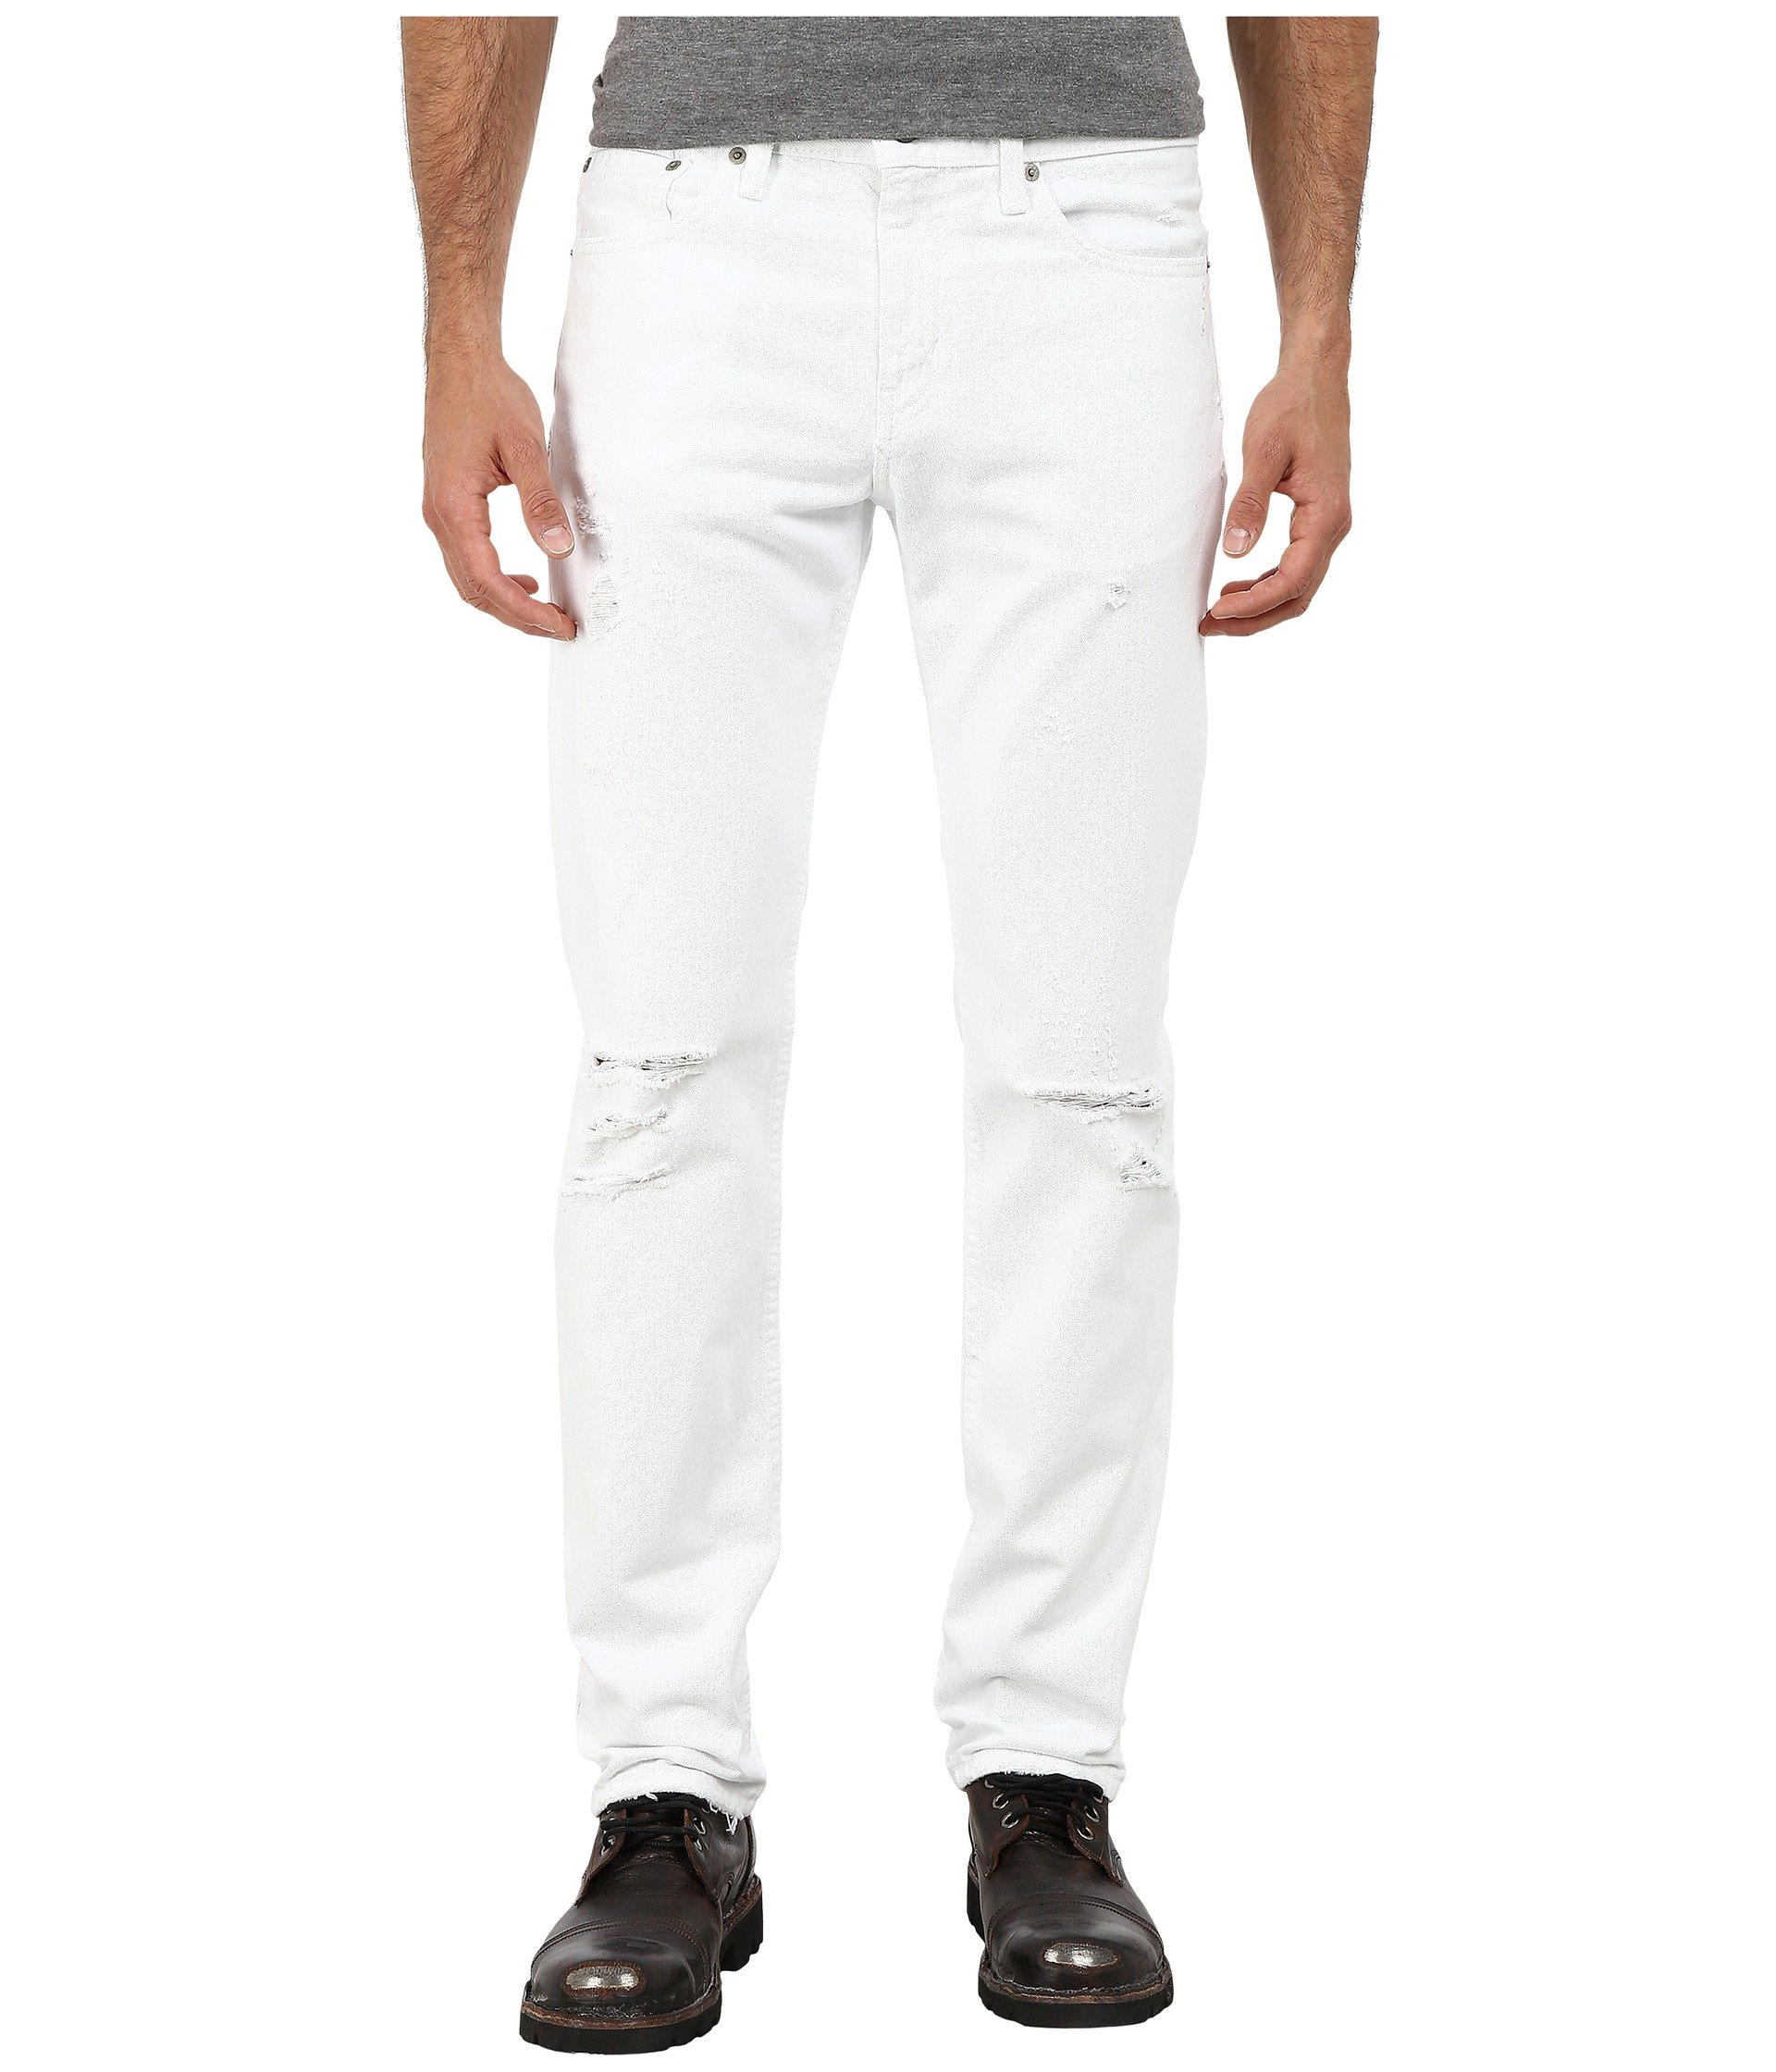 Galleon Slim Levi's Jean Optic 511 Fit Men's Whiteoutbull Denim rqrBUA